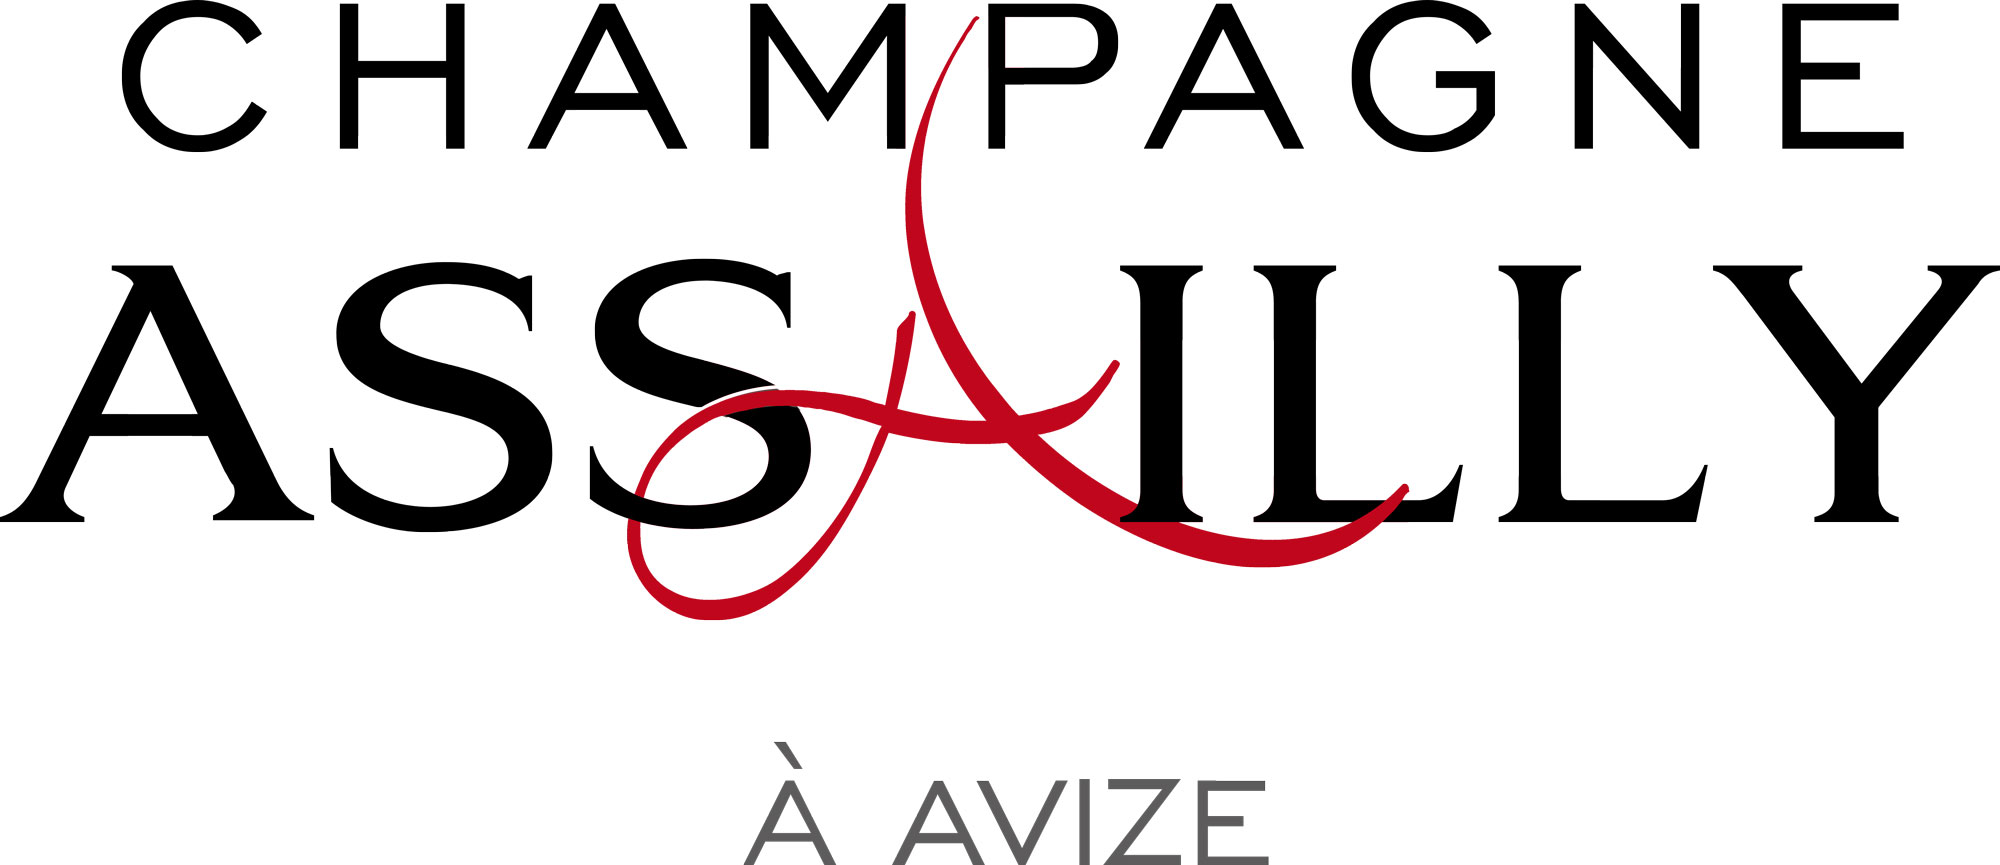 Champagne Assailly